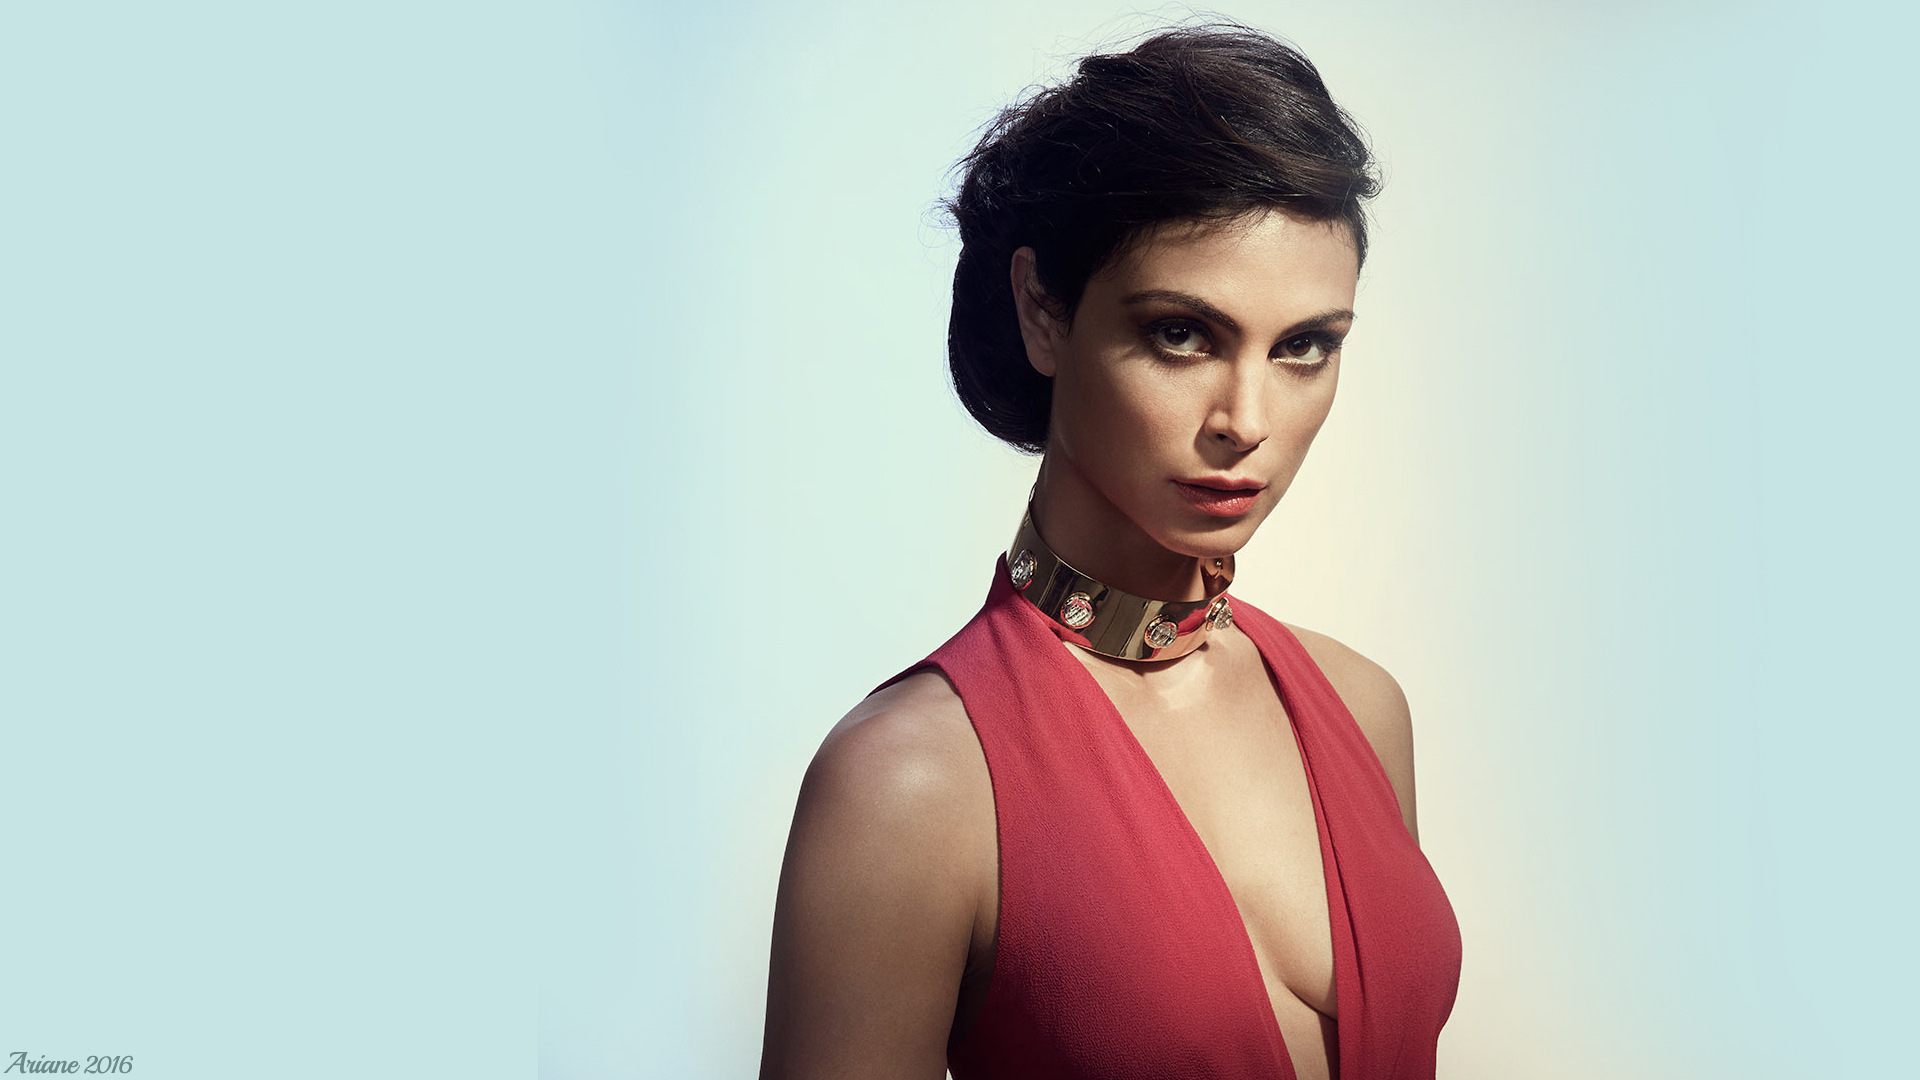 1920x1080 - Morena Baccarin Wallpapers 15